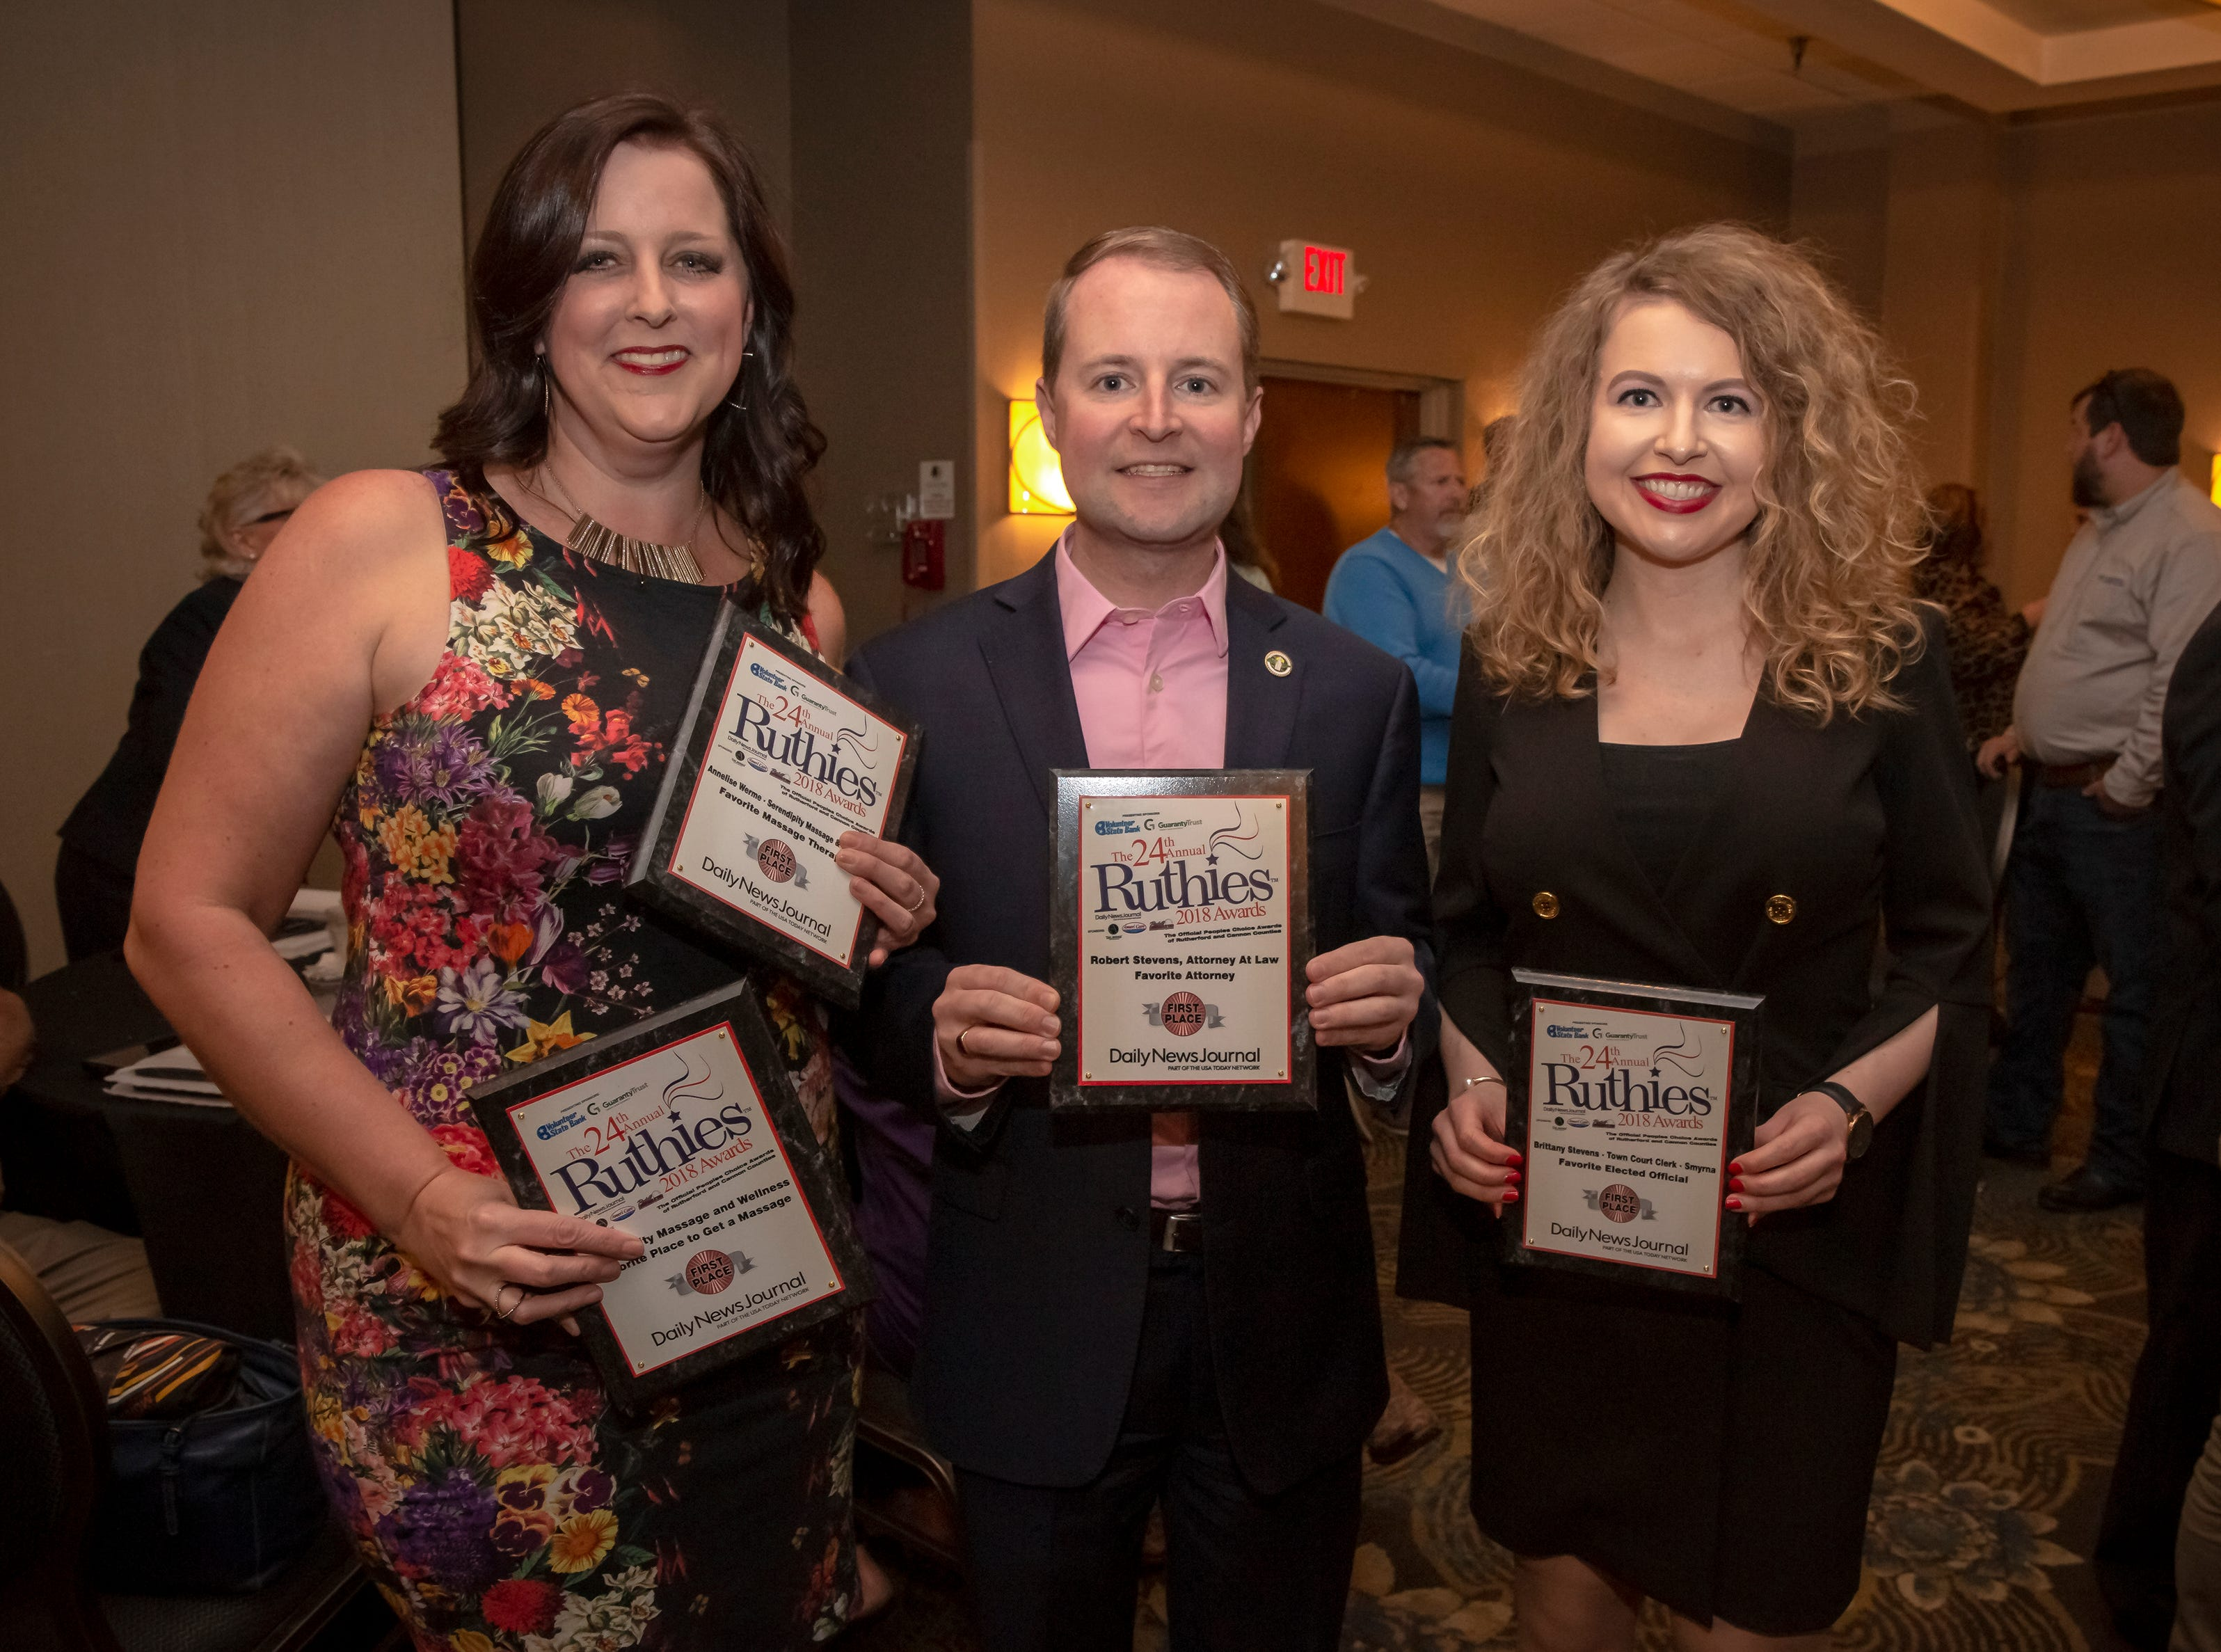 Annelise Werme, Robert Steven and Brittany Steven at the 24th annual Ruthie awards held at DoubleTree on Old Fort Parkway.